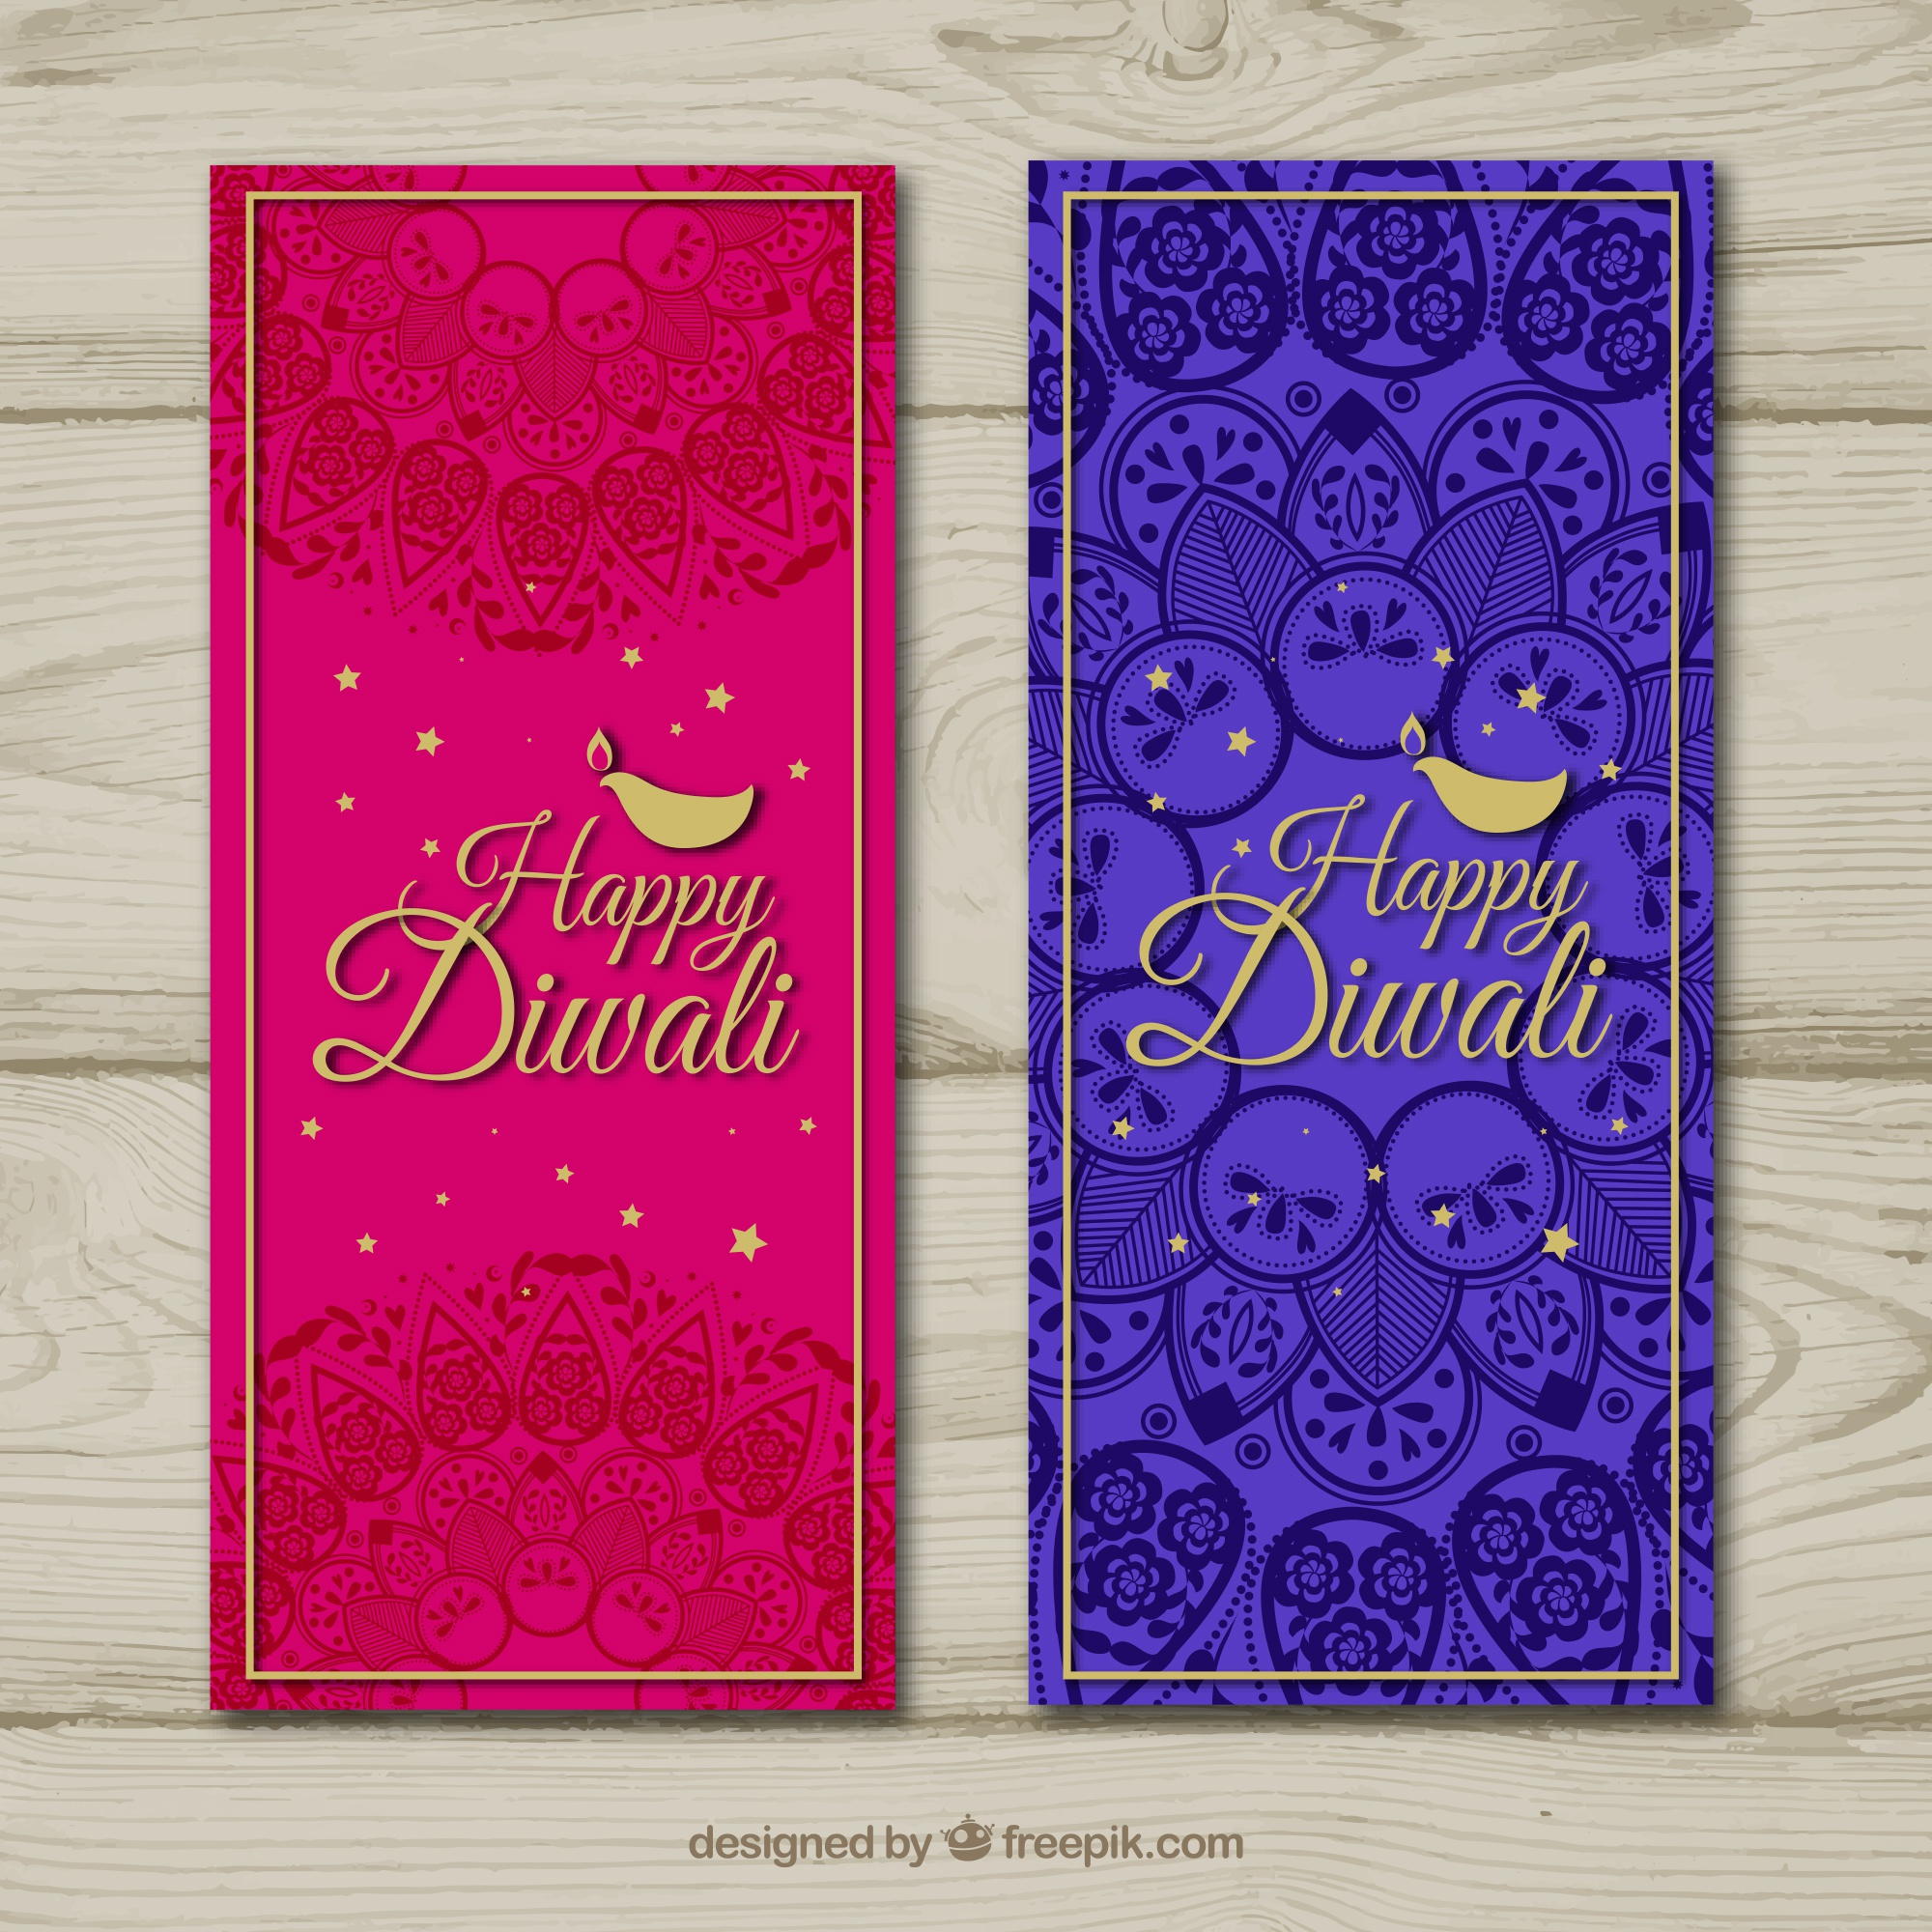 Abstracte diwali banners